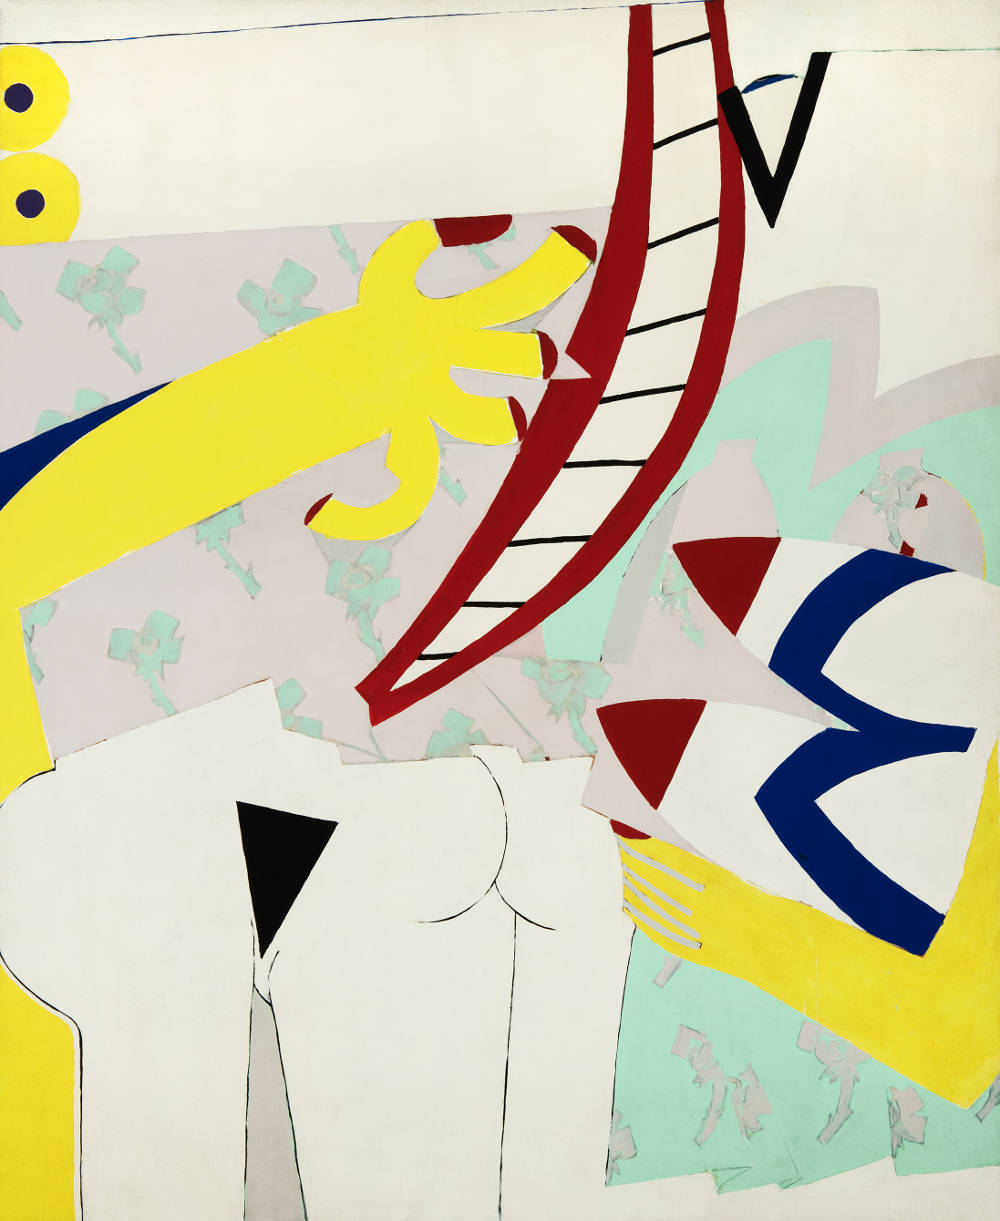 Knox Martin (b. 1923), Woman with Robe no.1, 1970–1. Inscribed (twice) on stretcher verso: 3793 / 3793. Acrylic on canvas 96 x 79 1/8 inches